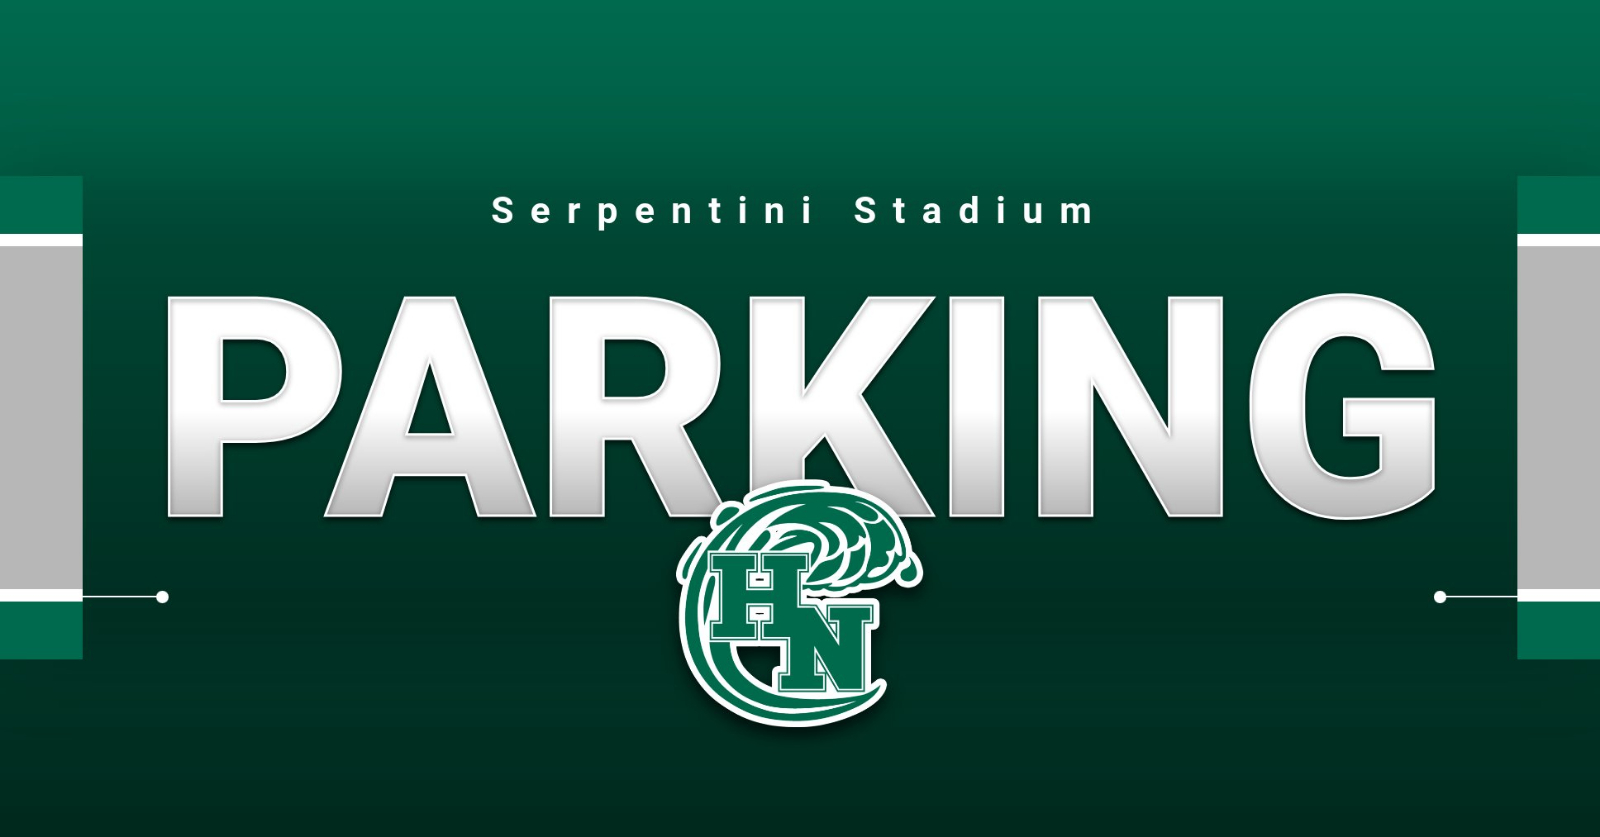 Where to Park for Athletic Games at Serpentini Stadium